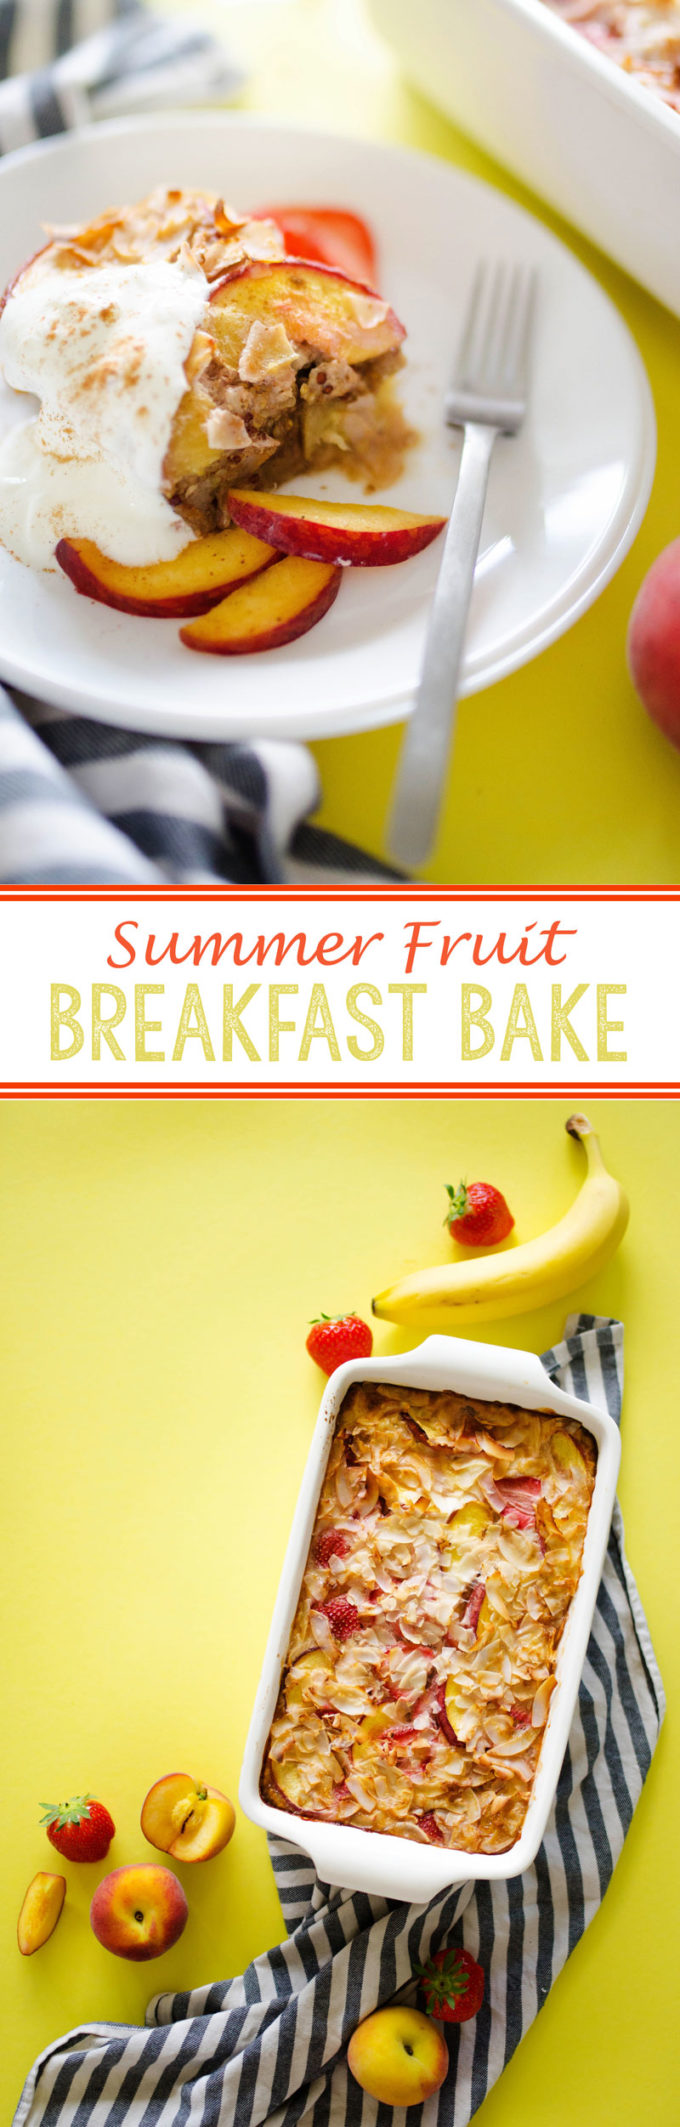 Summer Fruit Breakfast Bake is a quick, easy, and flavorful breakfast solution